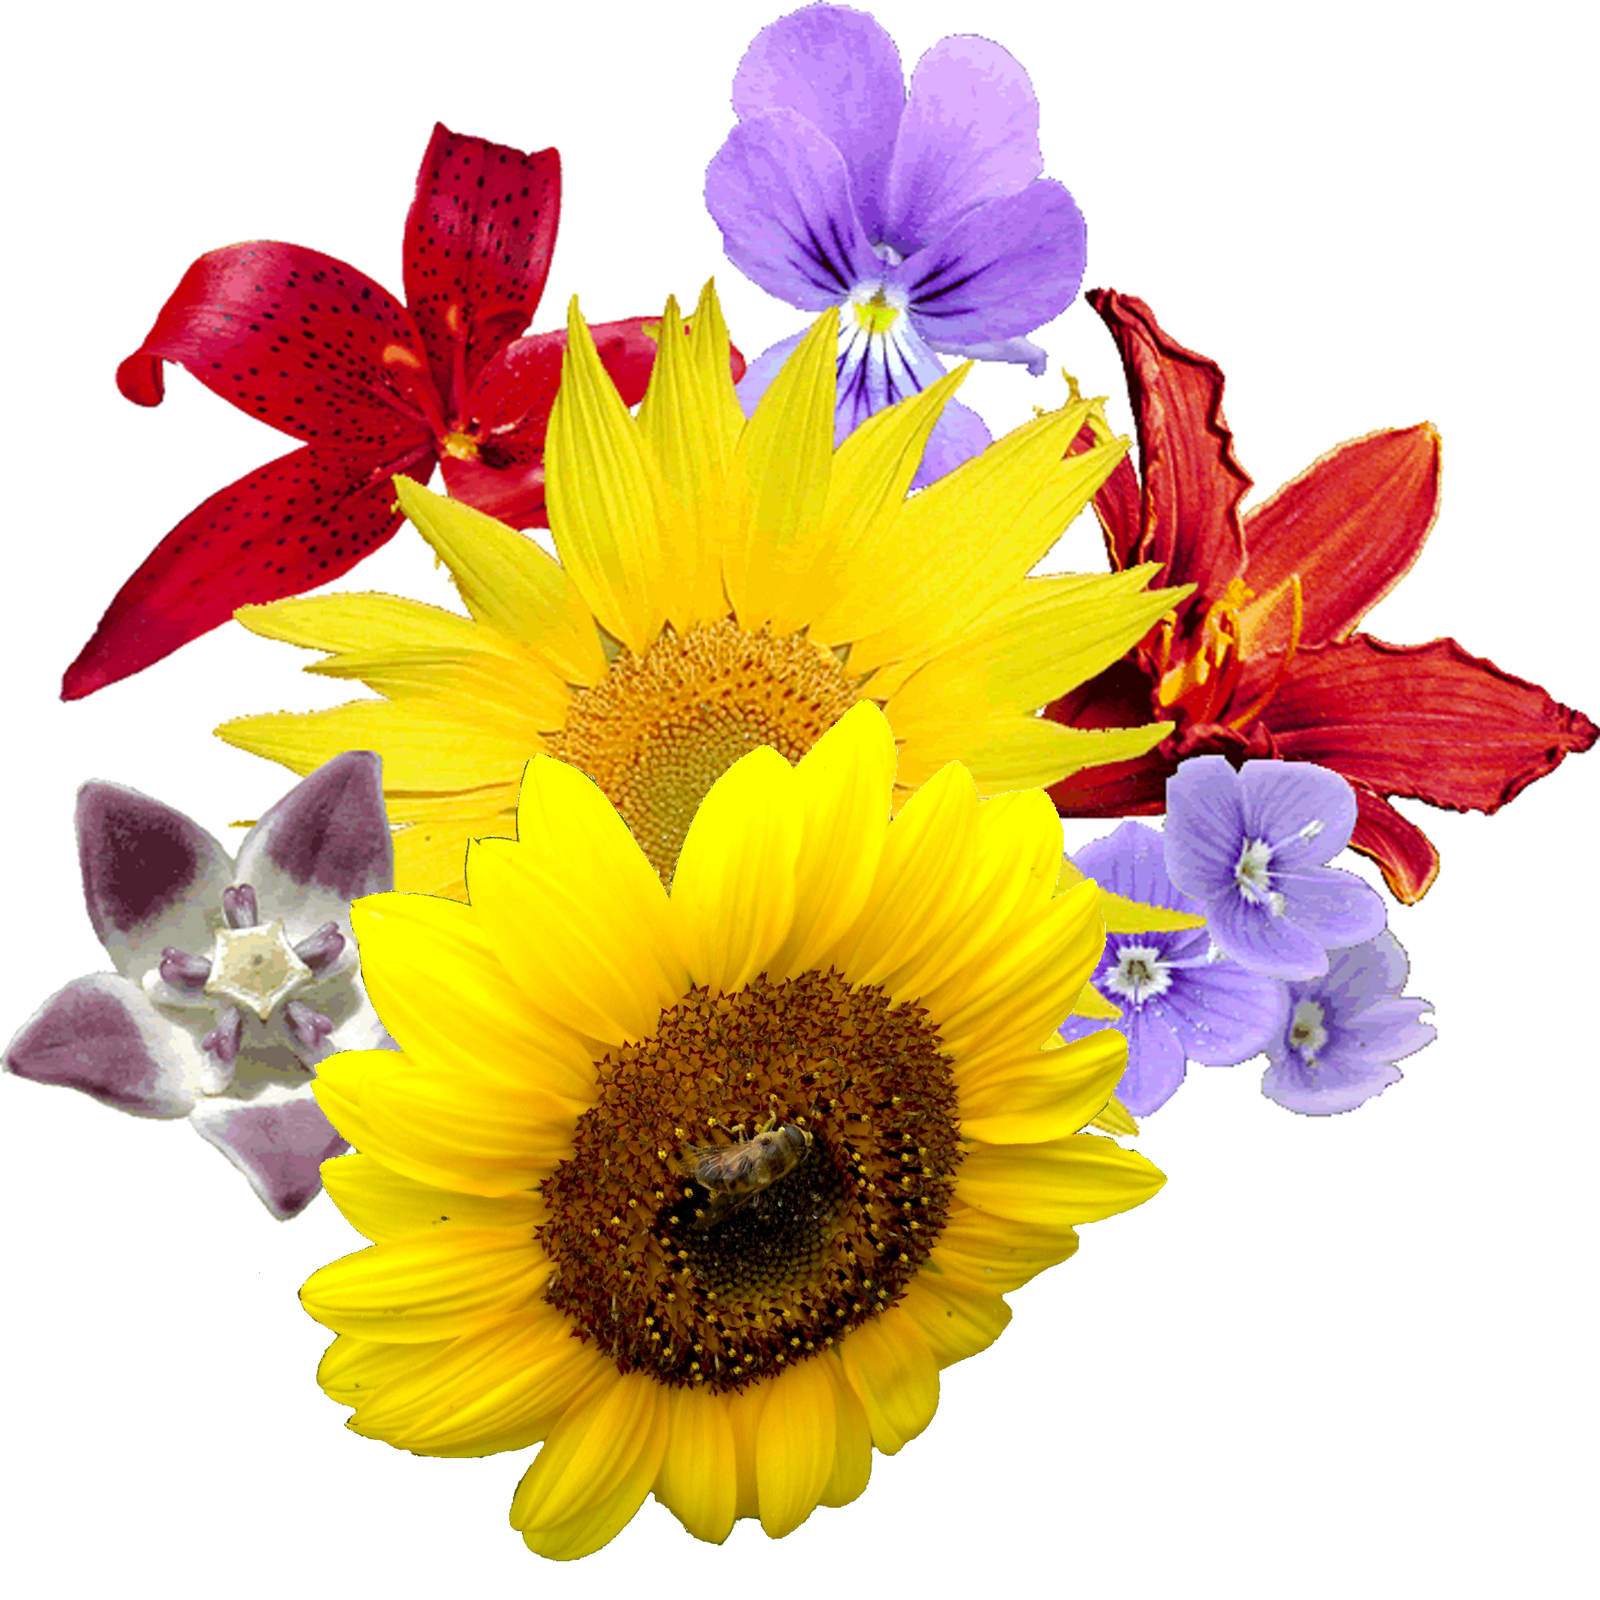 Flower images png. Flowers clipart transparent free